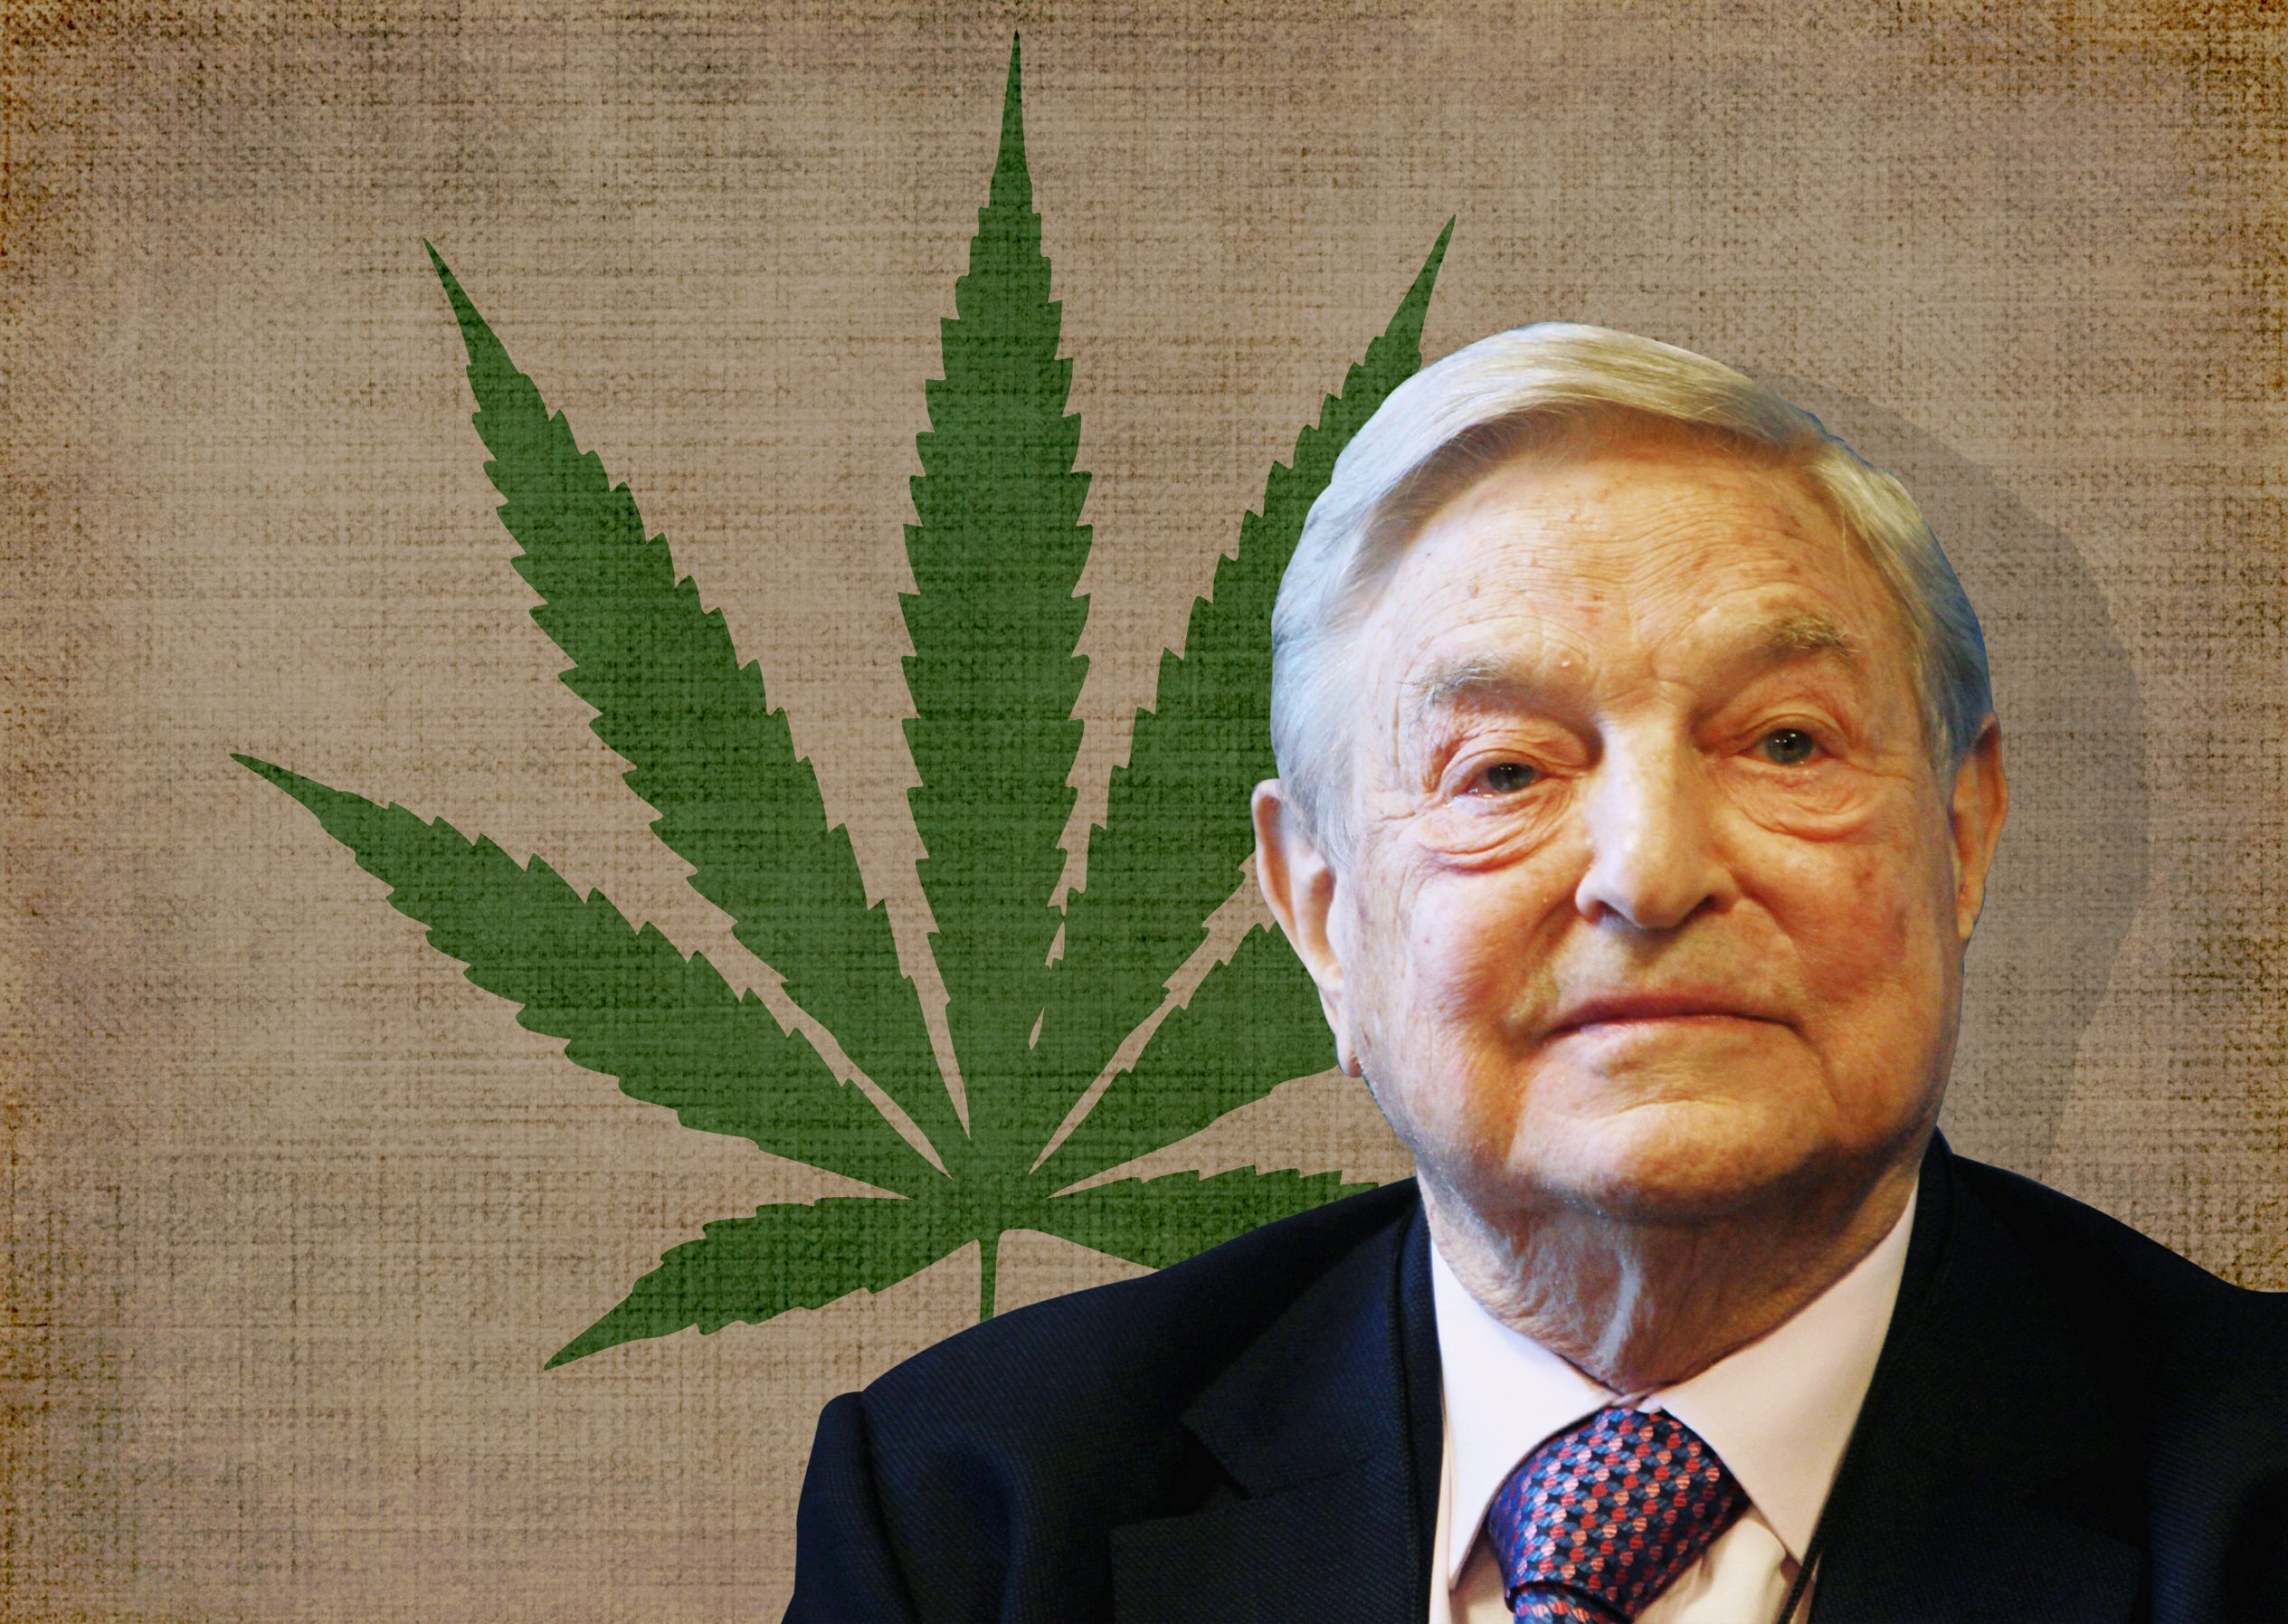 https://i0.wp.com/media.washtimes.com.s3.amazonaws.com/media/image/2014/04/02/4_2_2014_pot-soros-weed8201.jpg